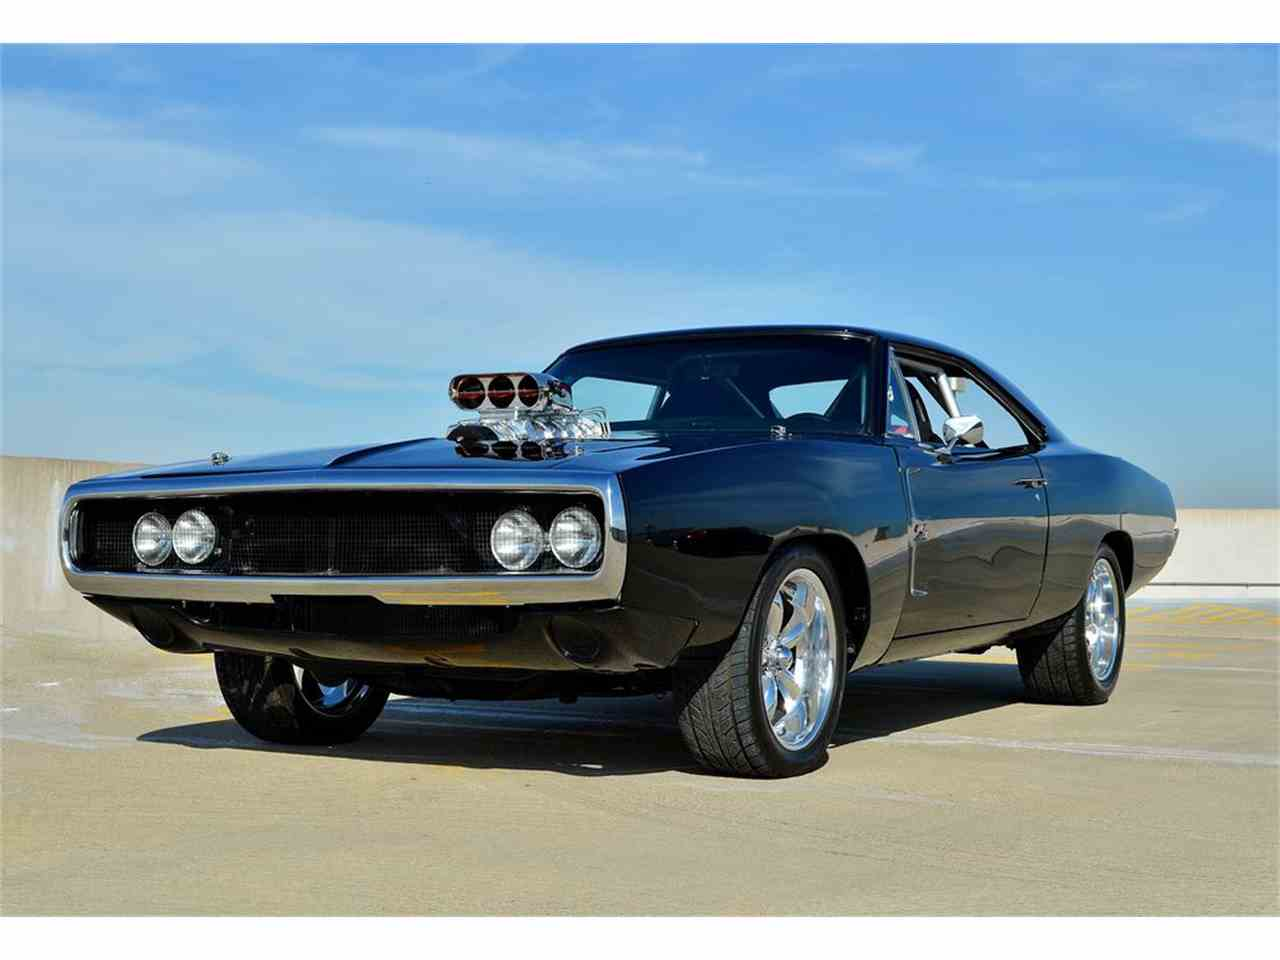 1968 Charger For Sale >> 1968 Dodge Charger Fast N Furious Movie Car for Sale | ClassicCars.com | CC-968915